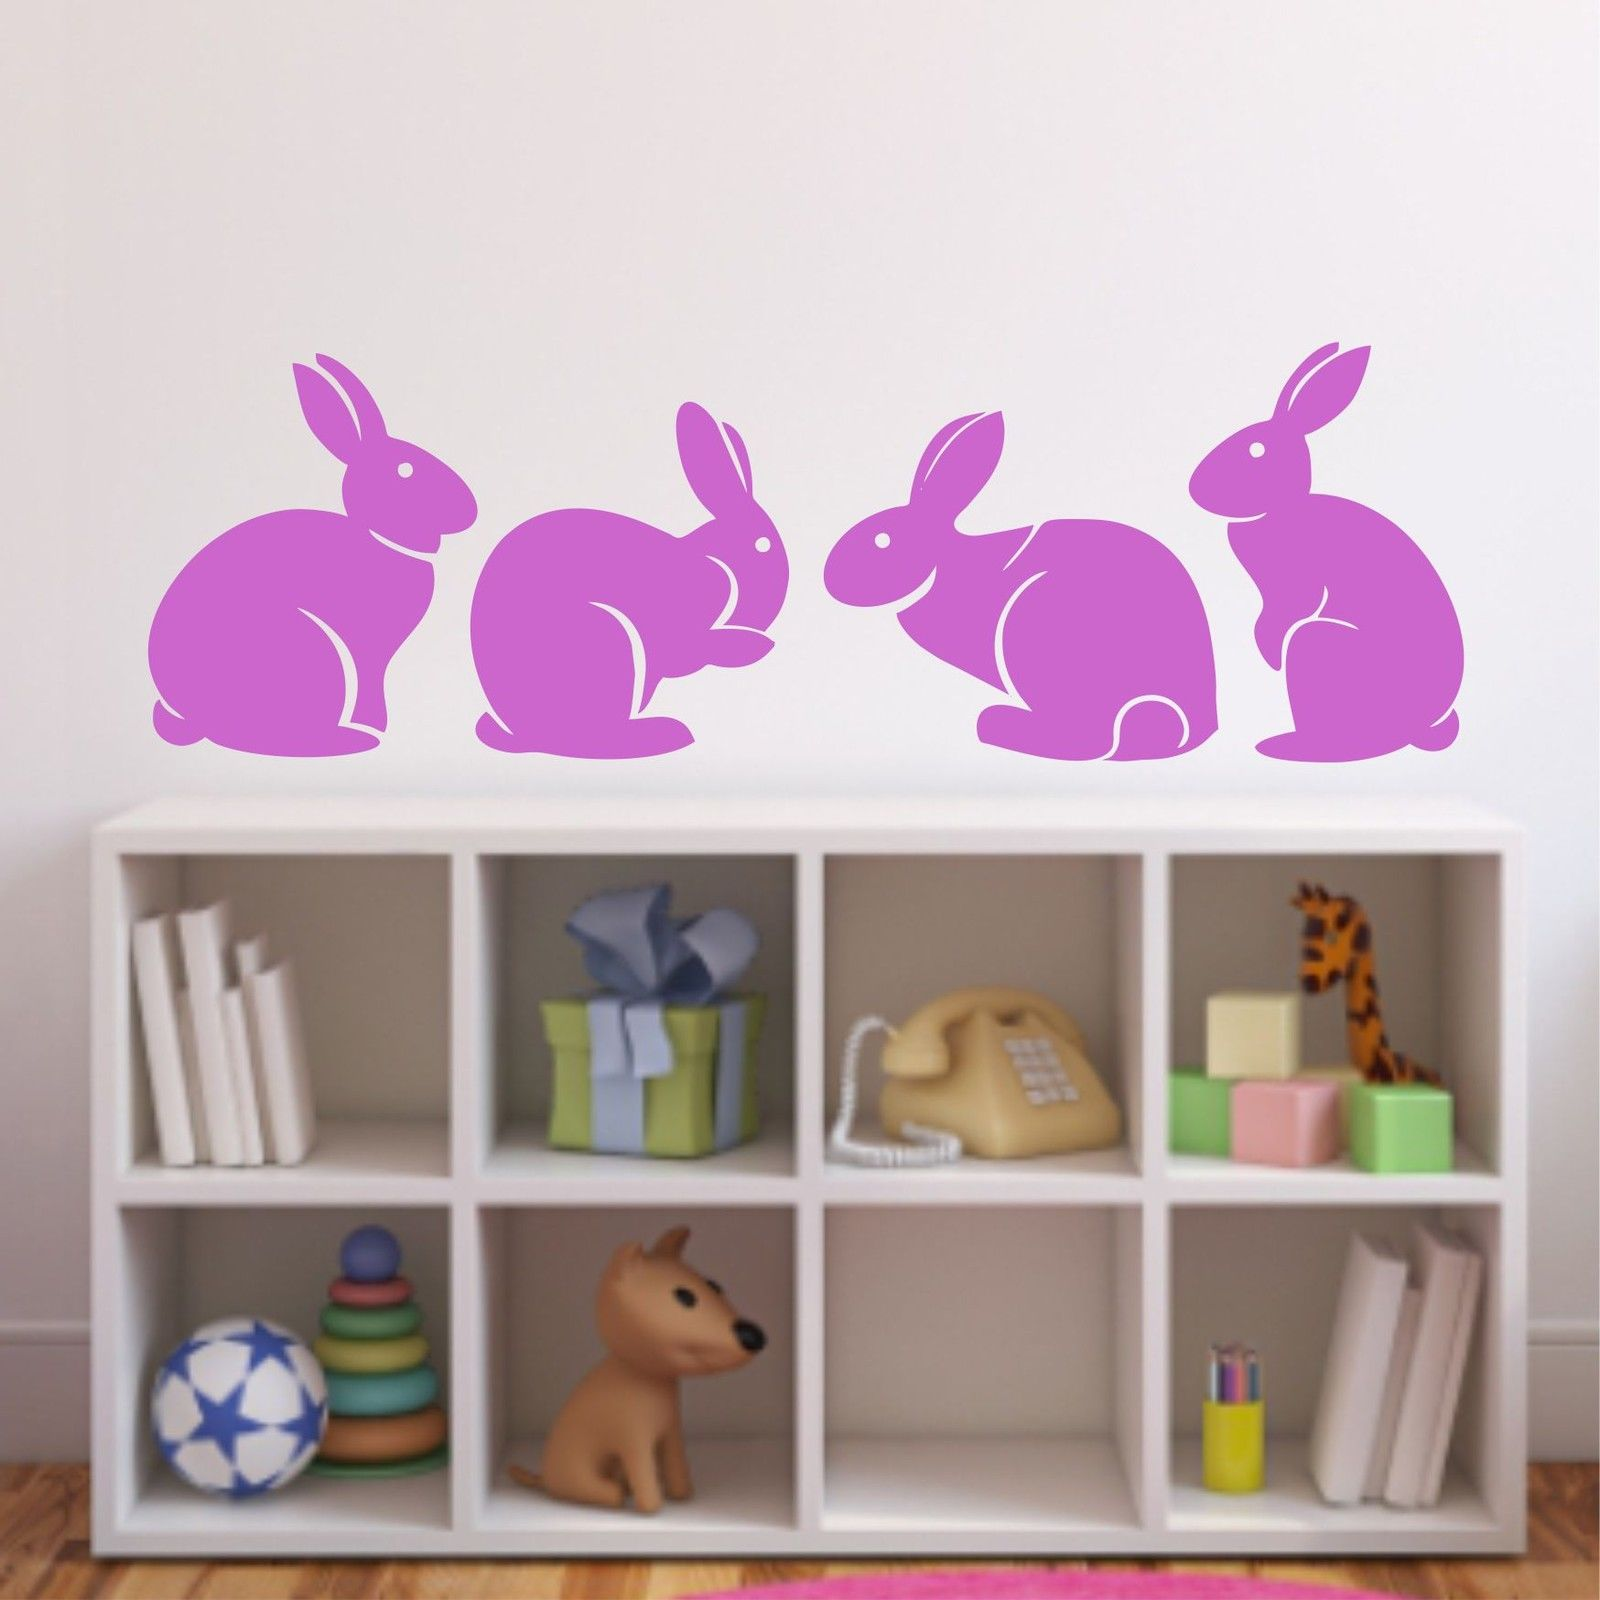 A007 Cute Bunny Rabbits Wall Sticker Baby Nursery Rabbitits Wall - Տնային դեկոր - Լուսանկար 4